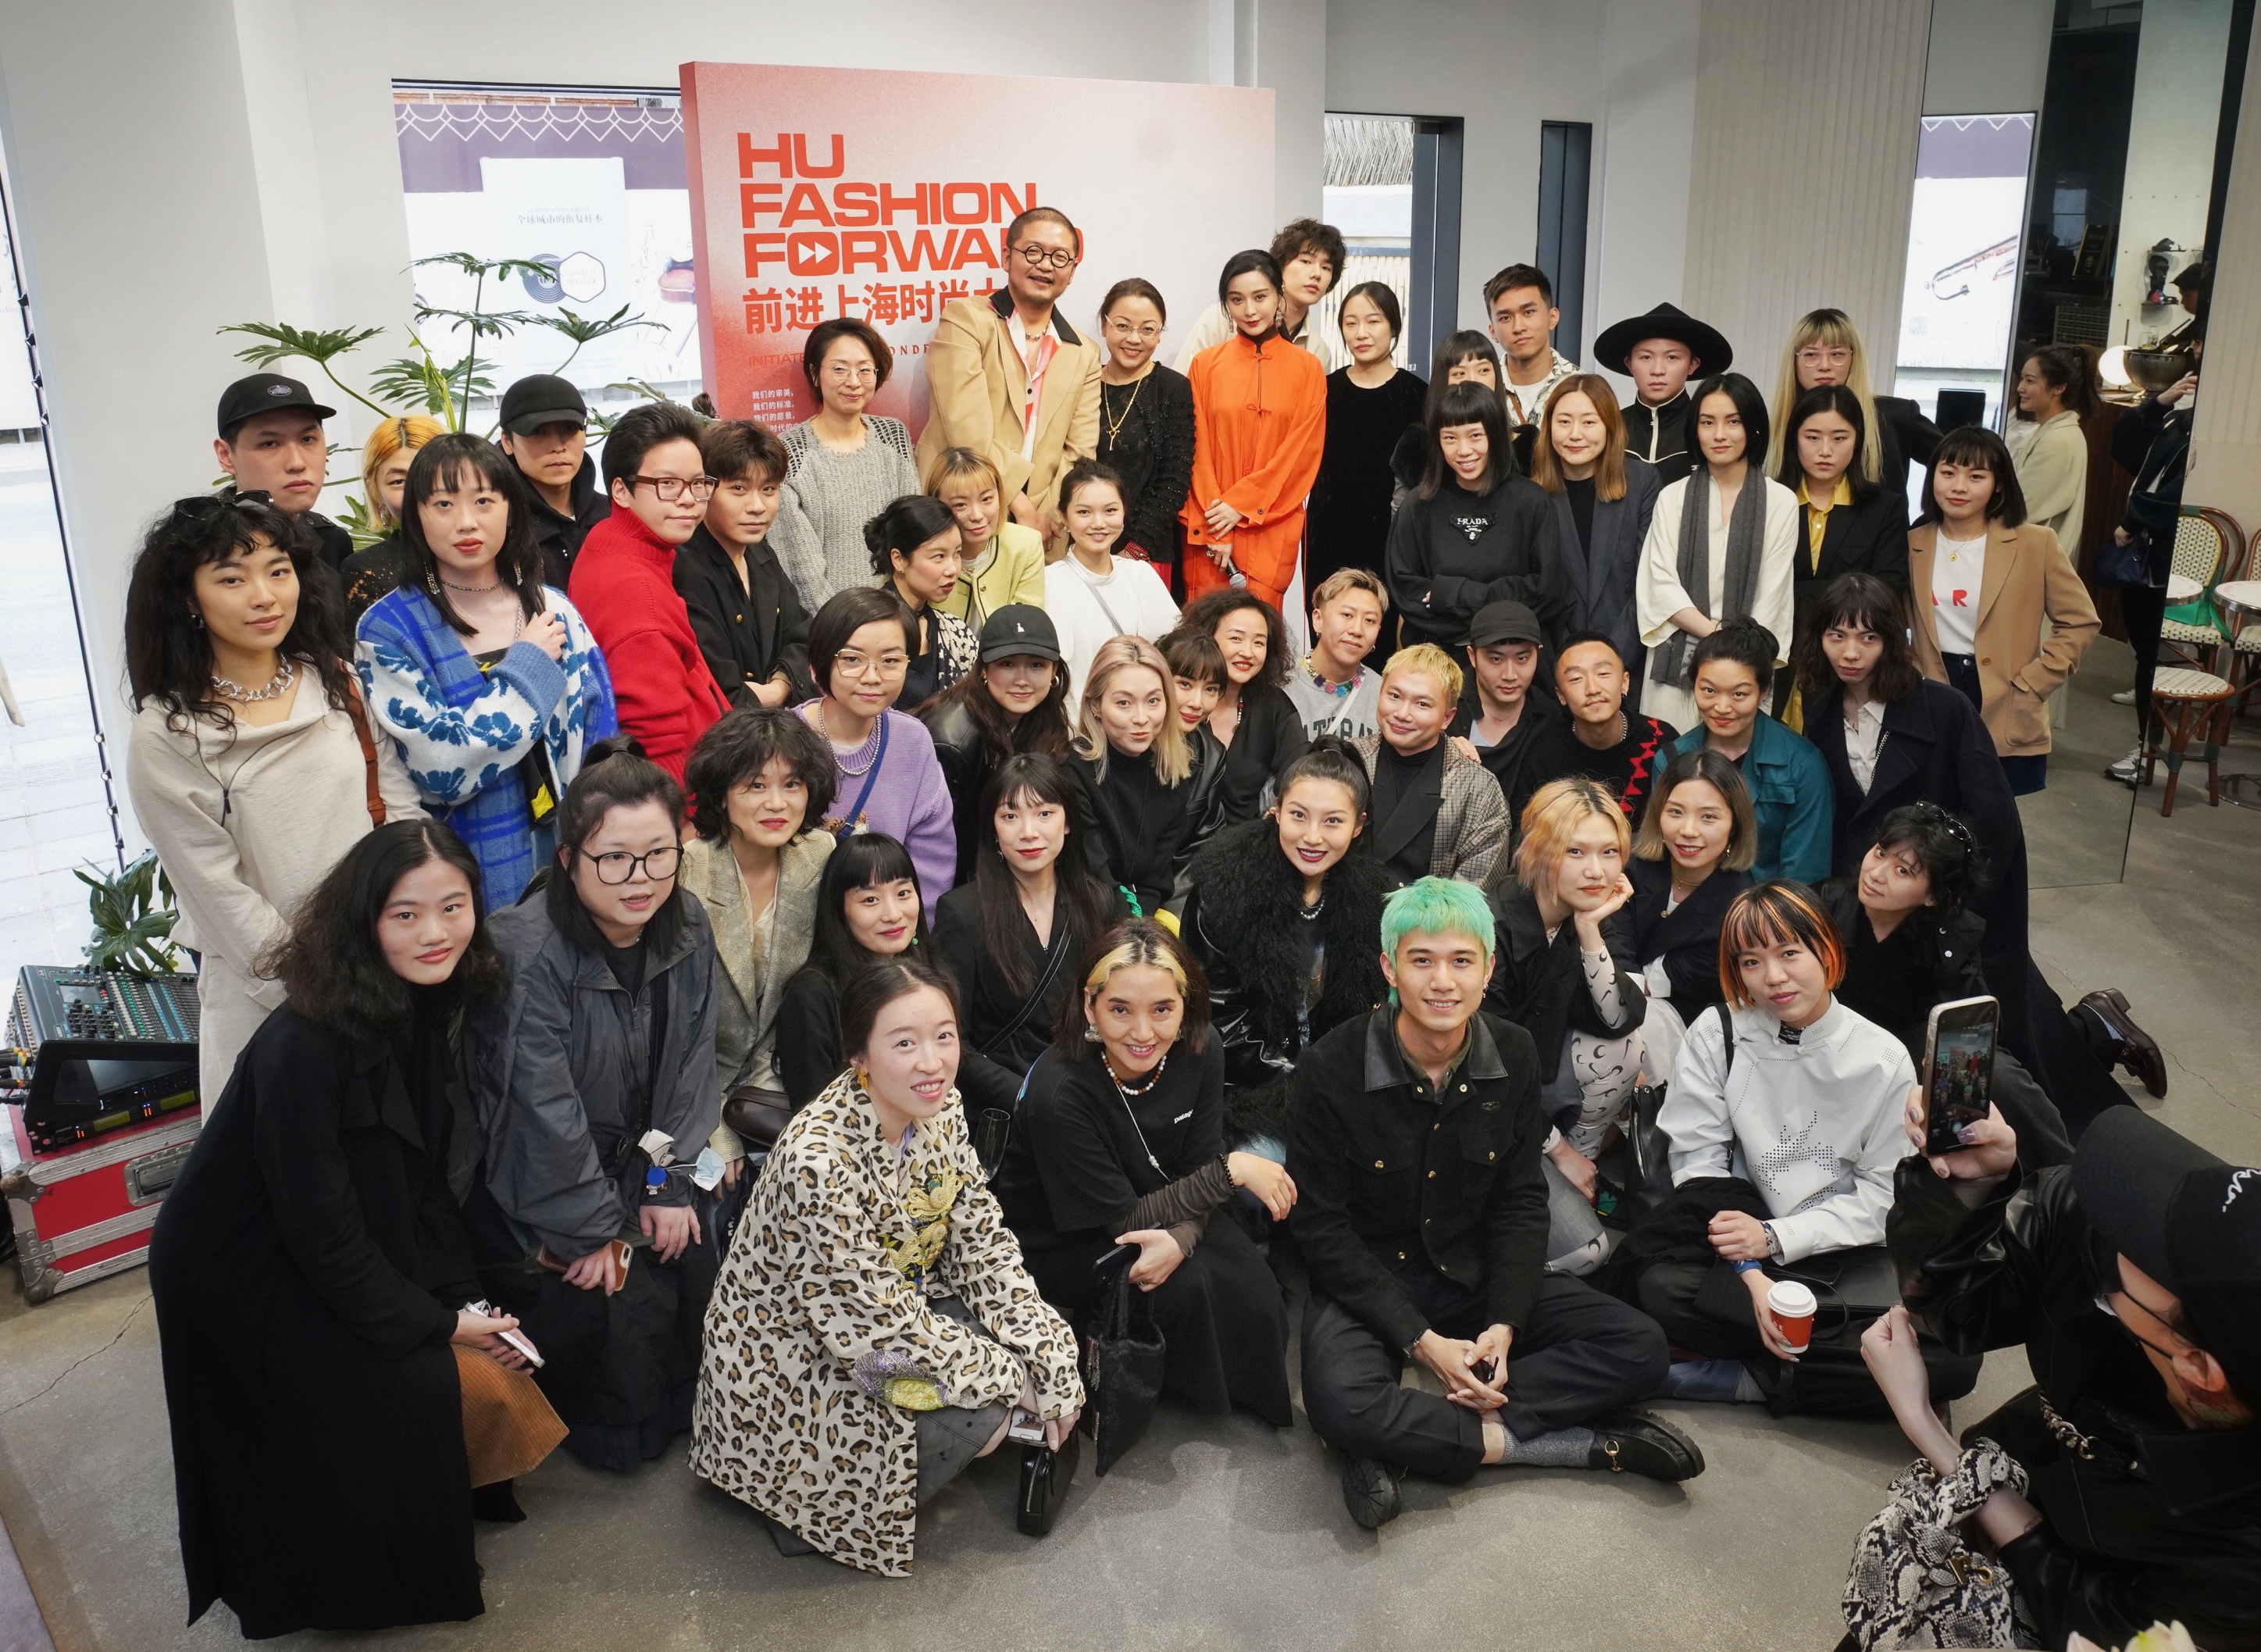 Designers and industry leaders attended the the announcement ceremony of Hu Fashion Forward.